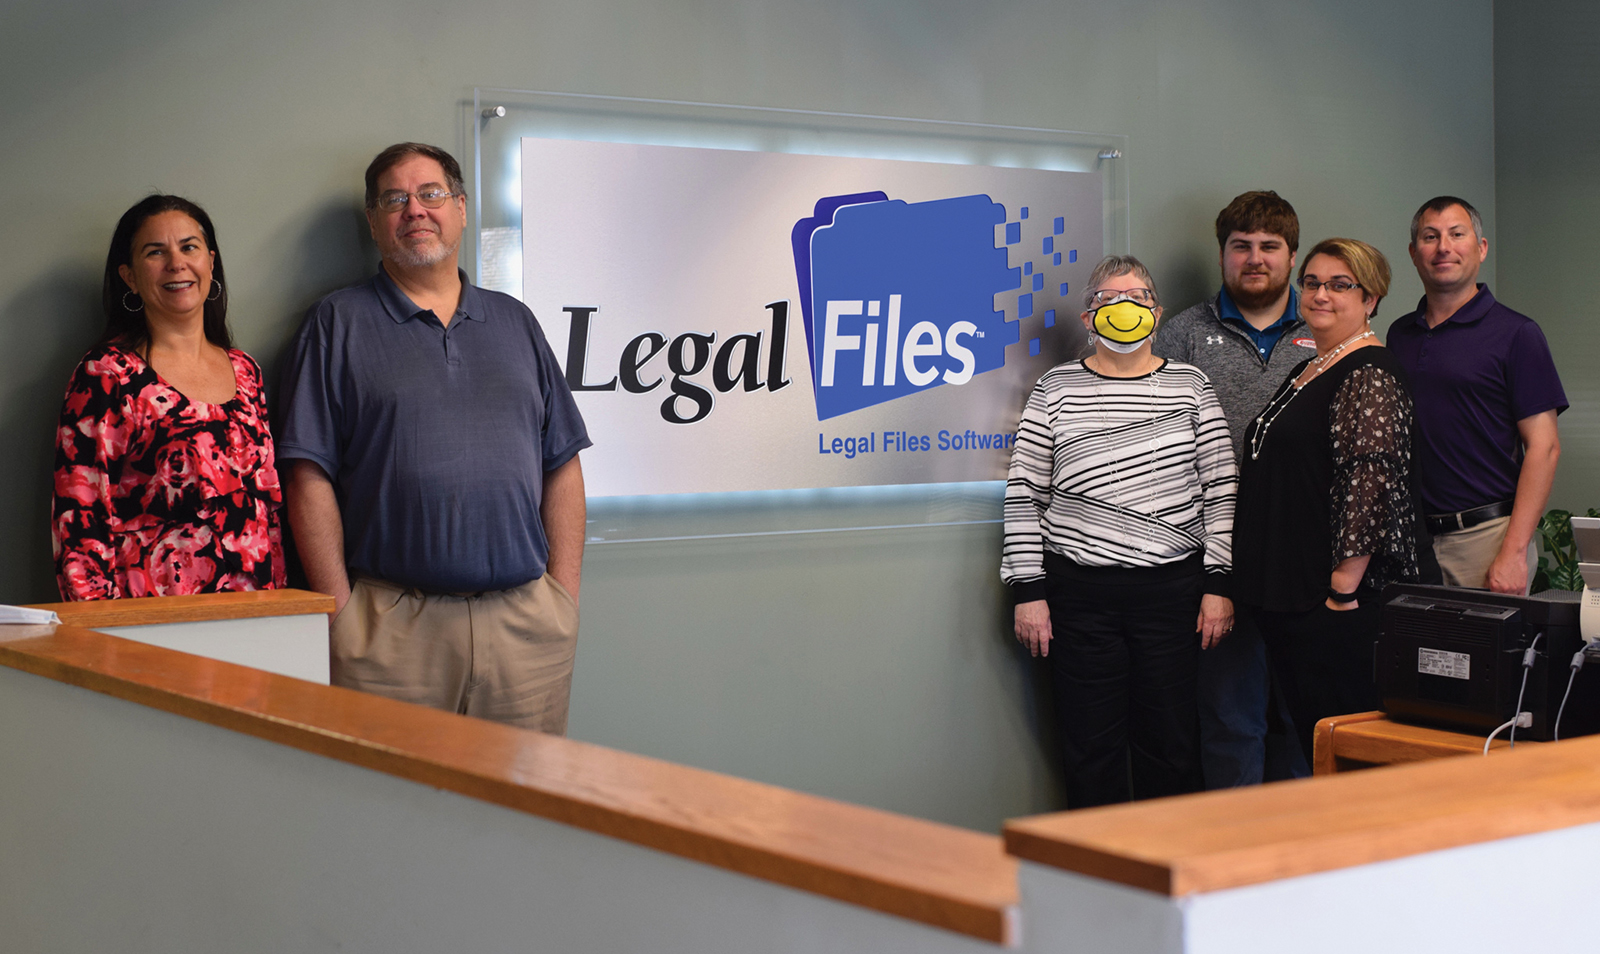 Legal Files helps companies stay organized